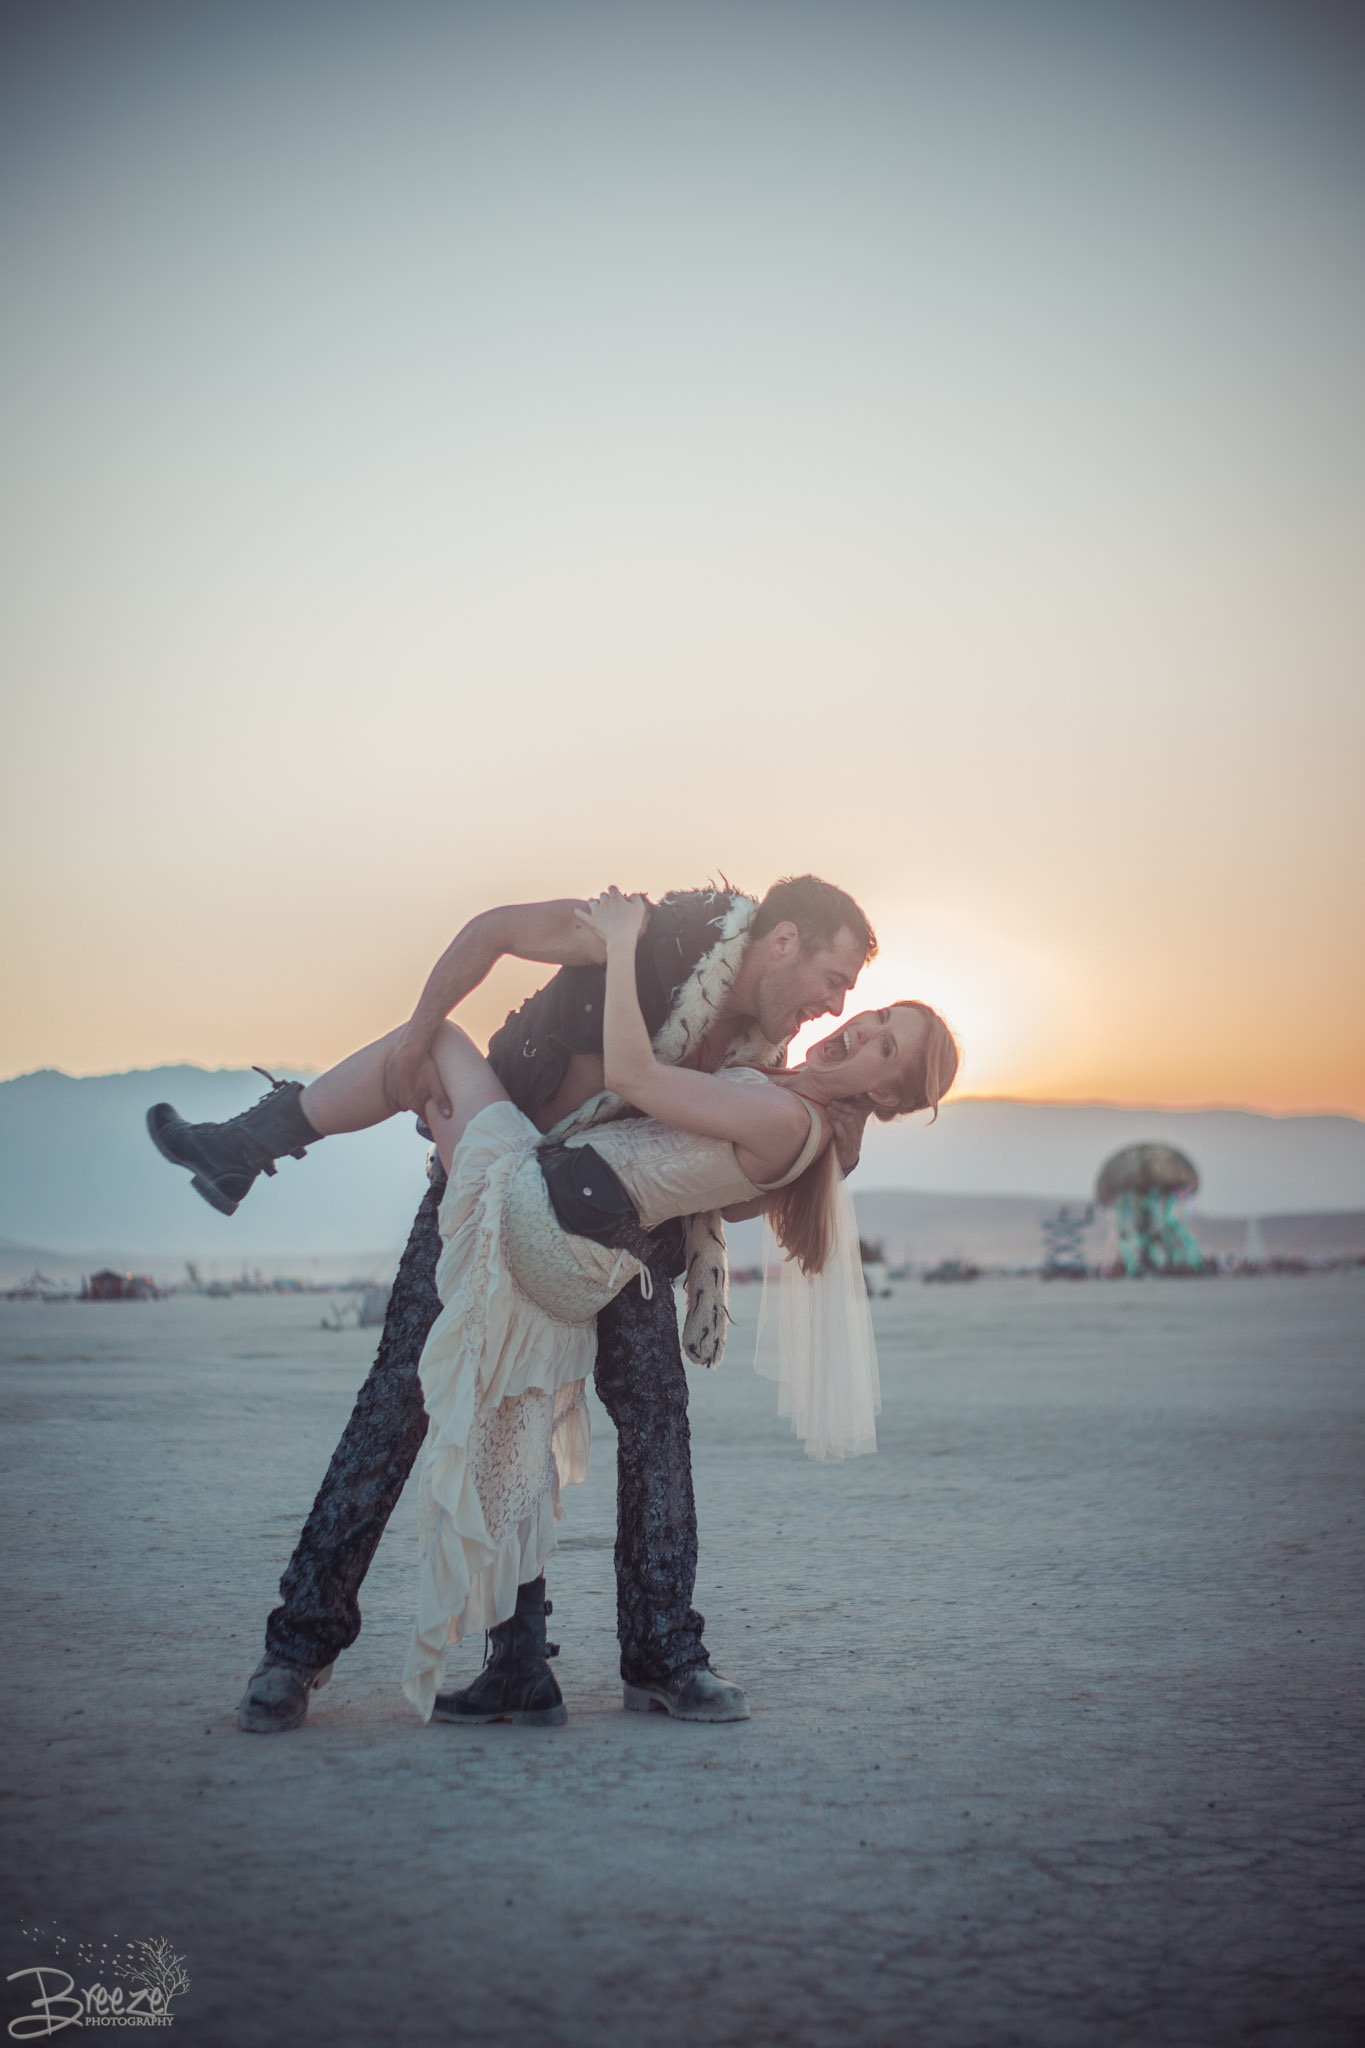 Brie'Ana Breeze Photography & Media - Burning Man 2018-3554.jpg